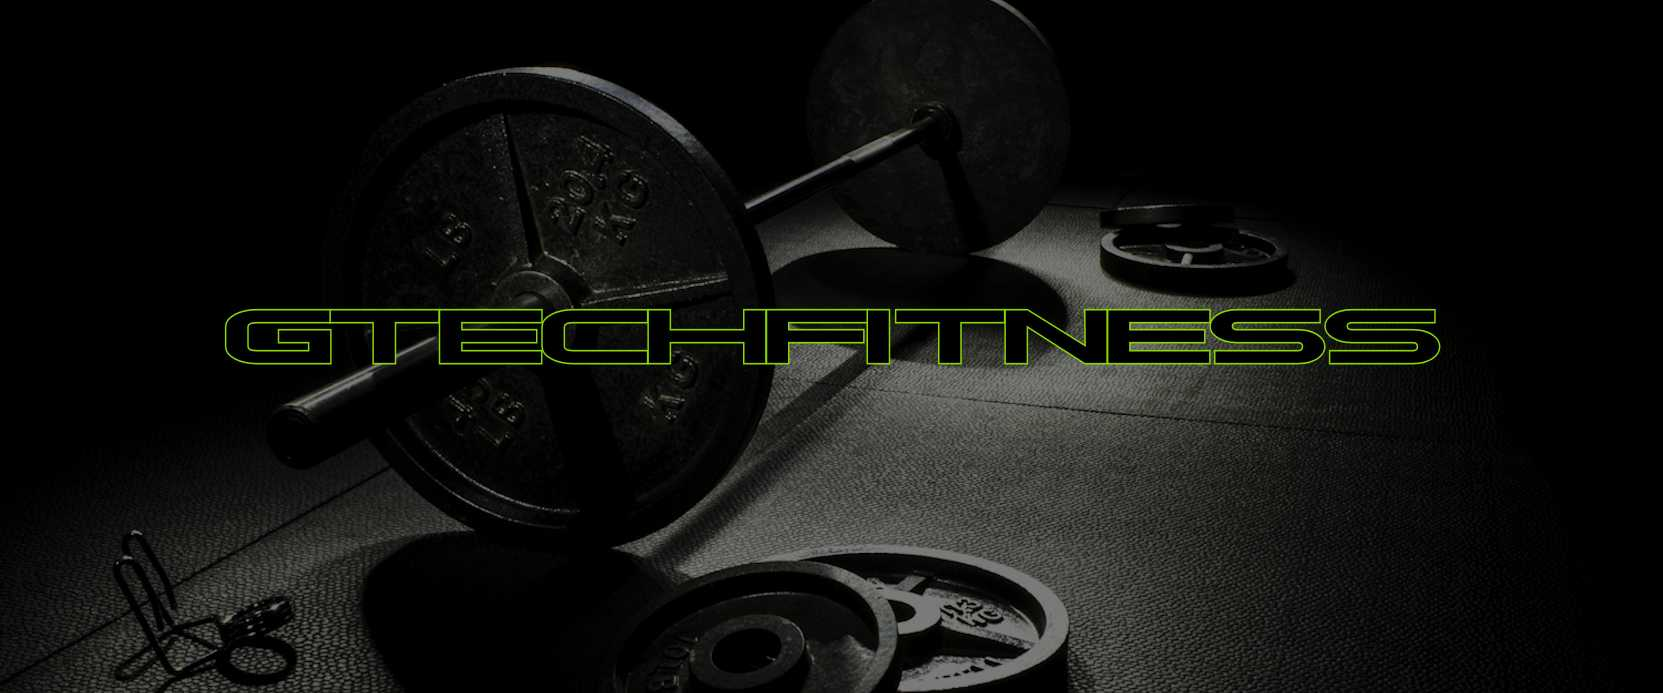 Gtech Fitness Home & Commercial Equipment